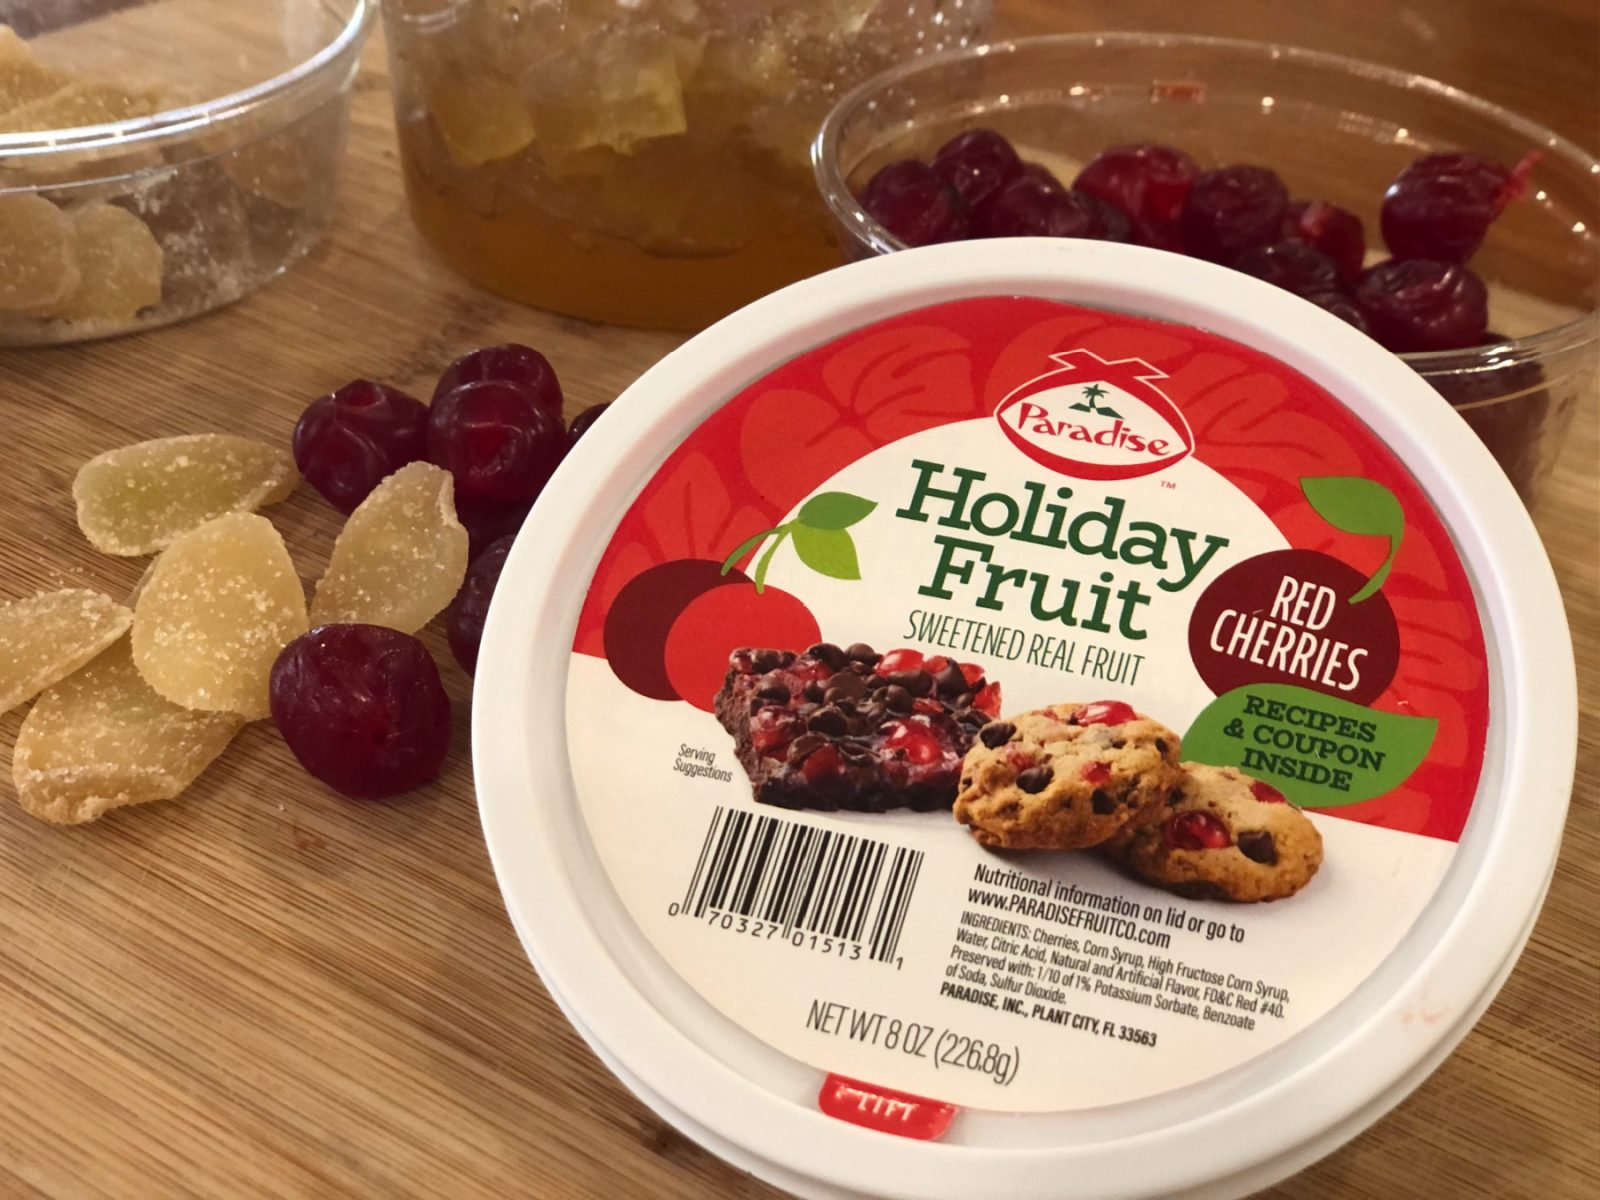 Paradise Holiday Fruit As Low As 69¢ At Publix on I Heart Publix